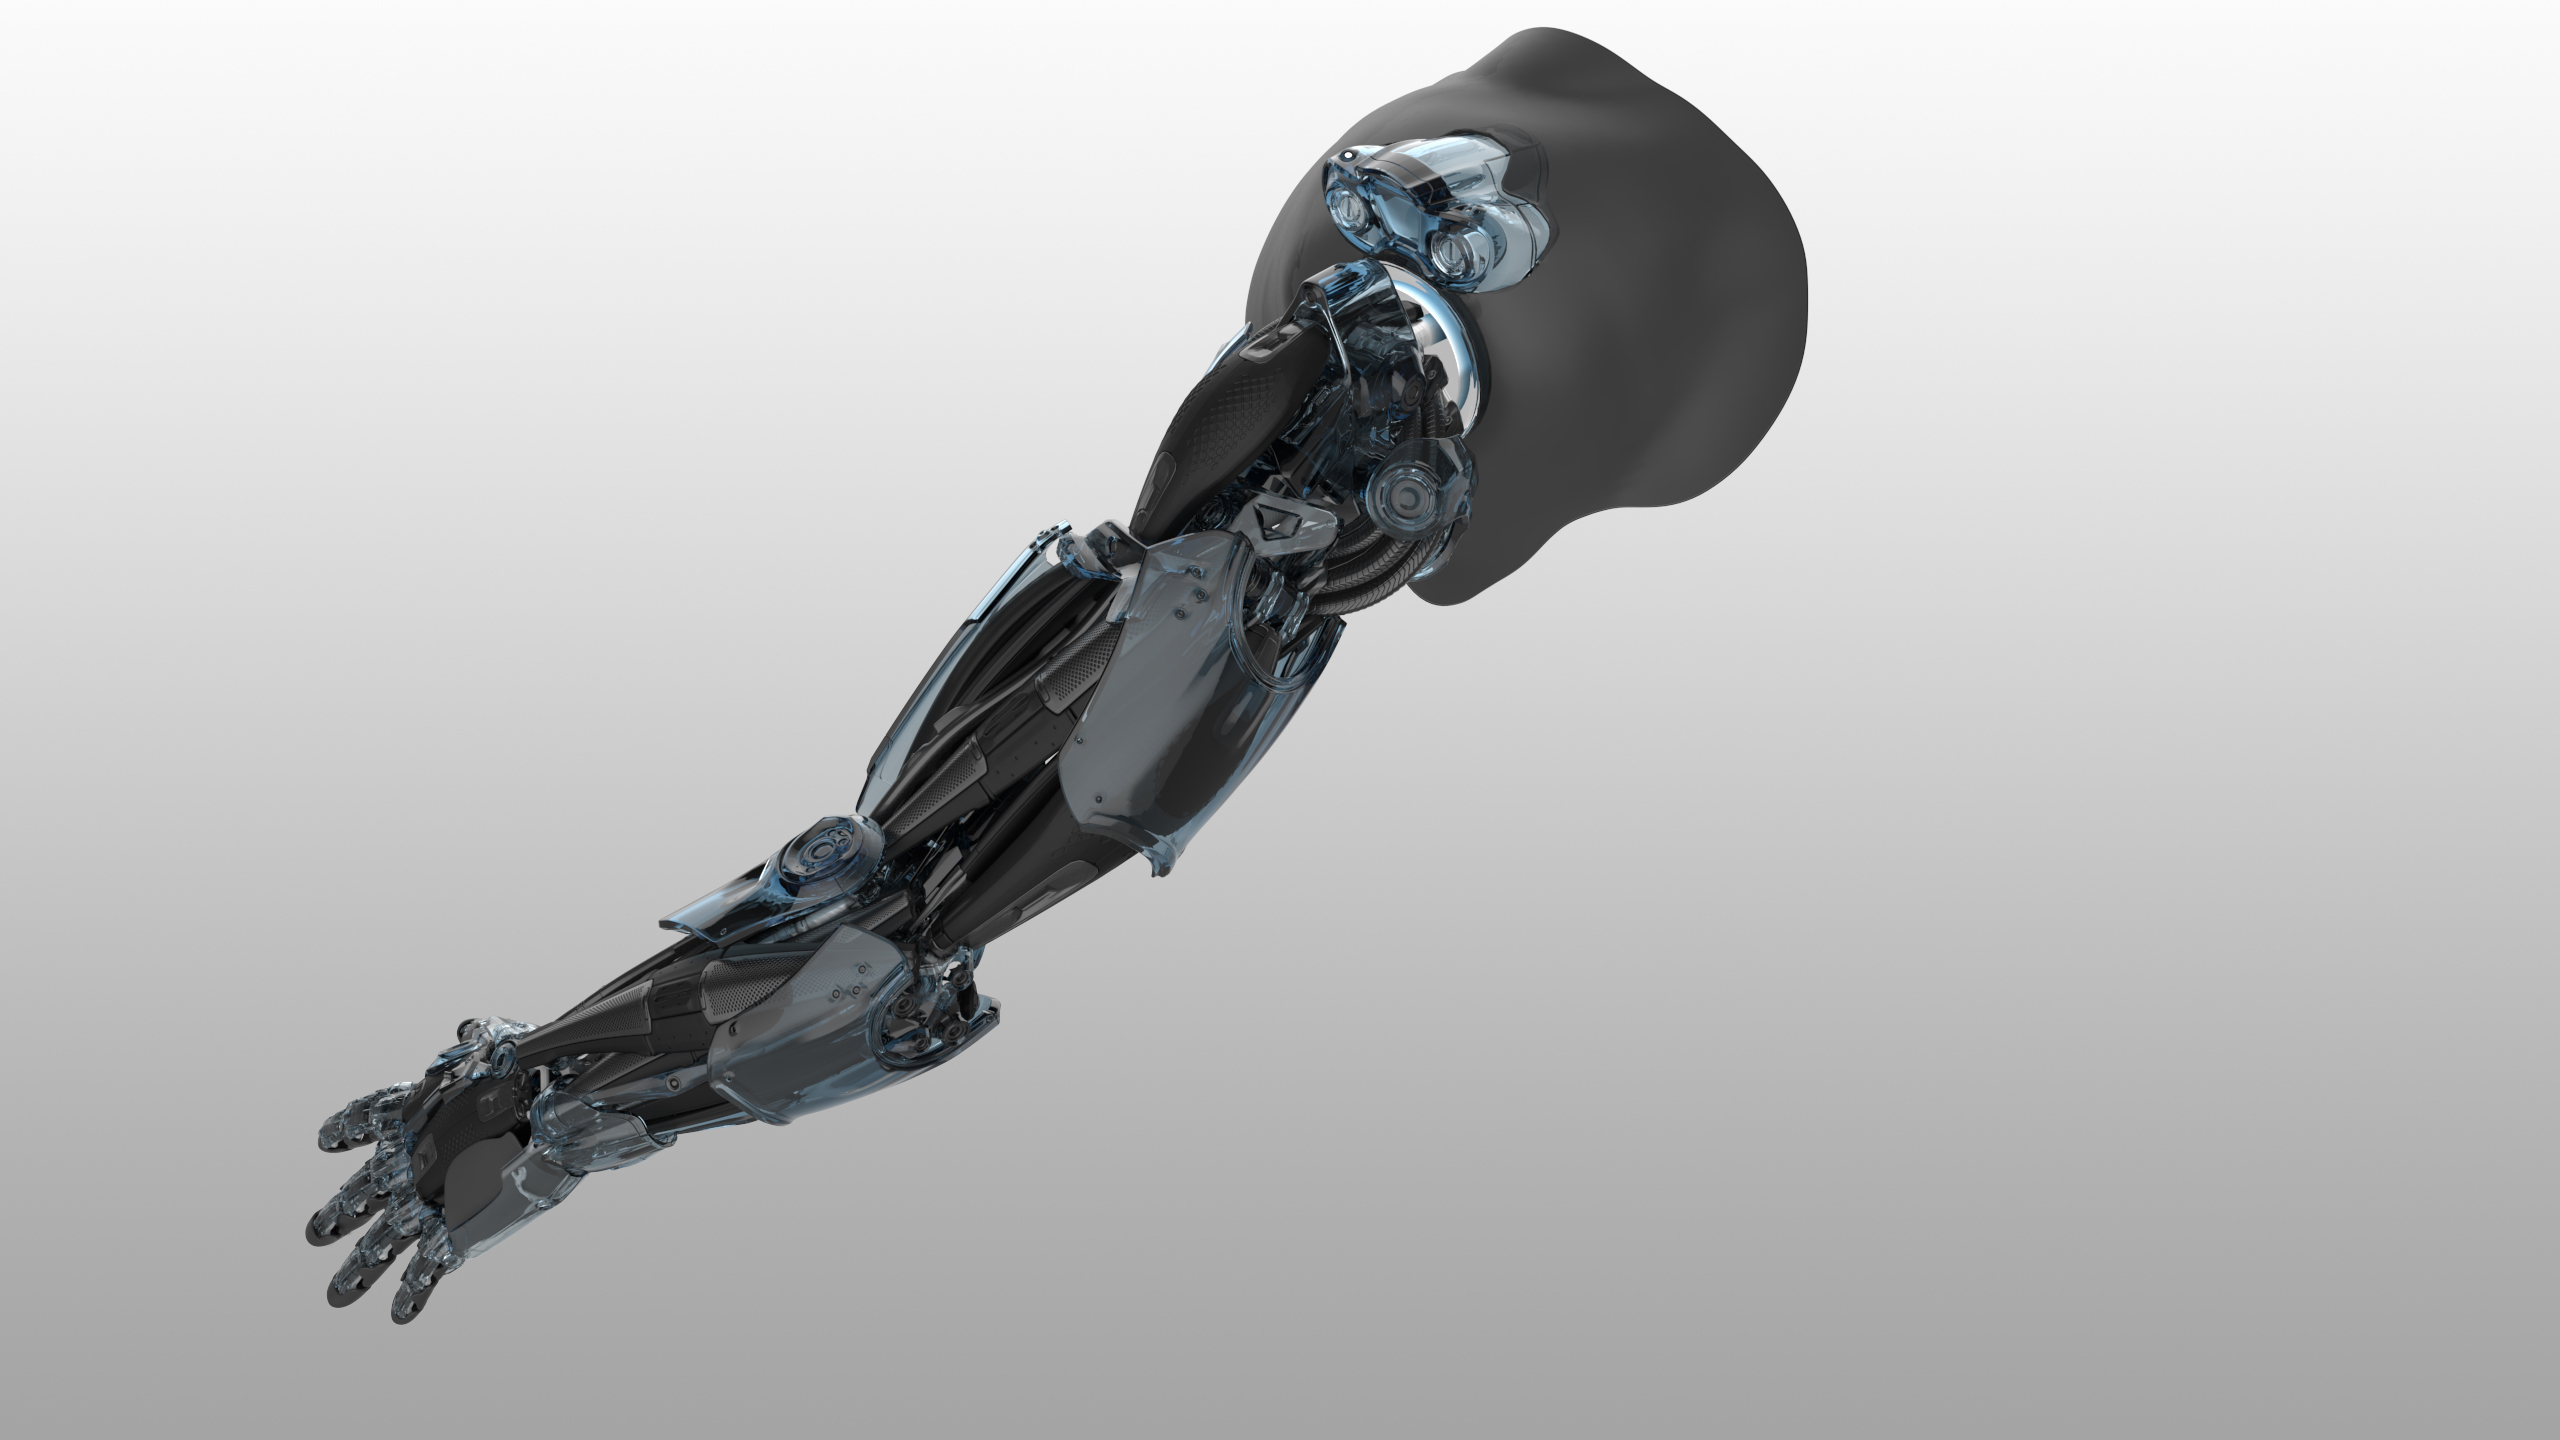 Back view shot of Bionic Arm Concept